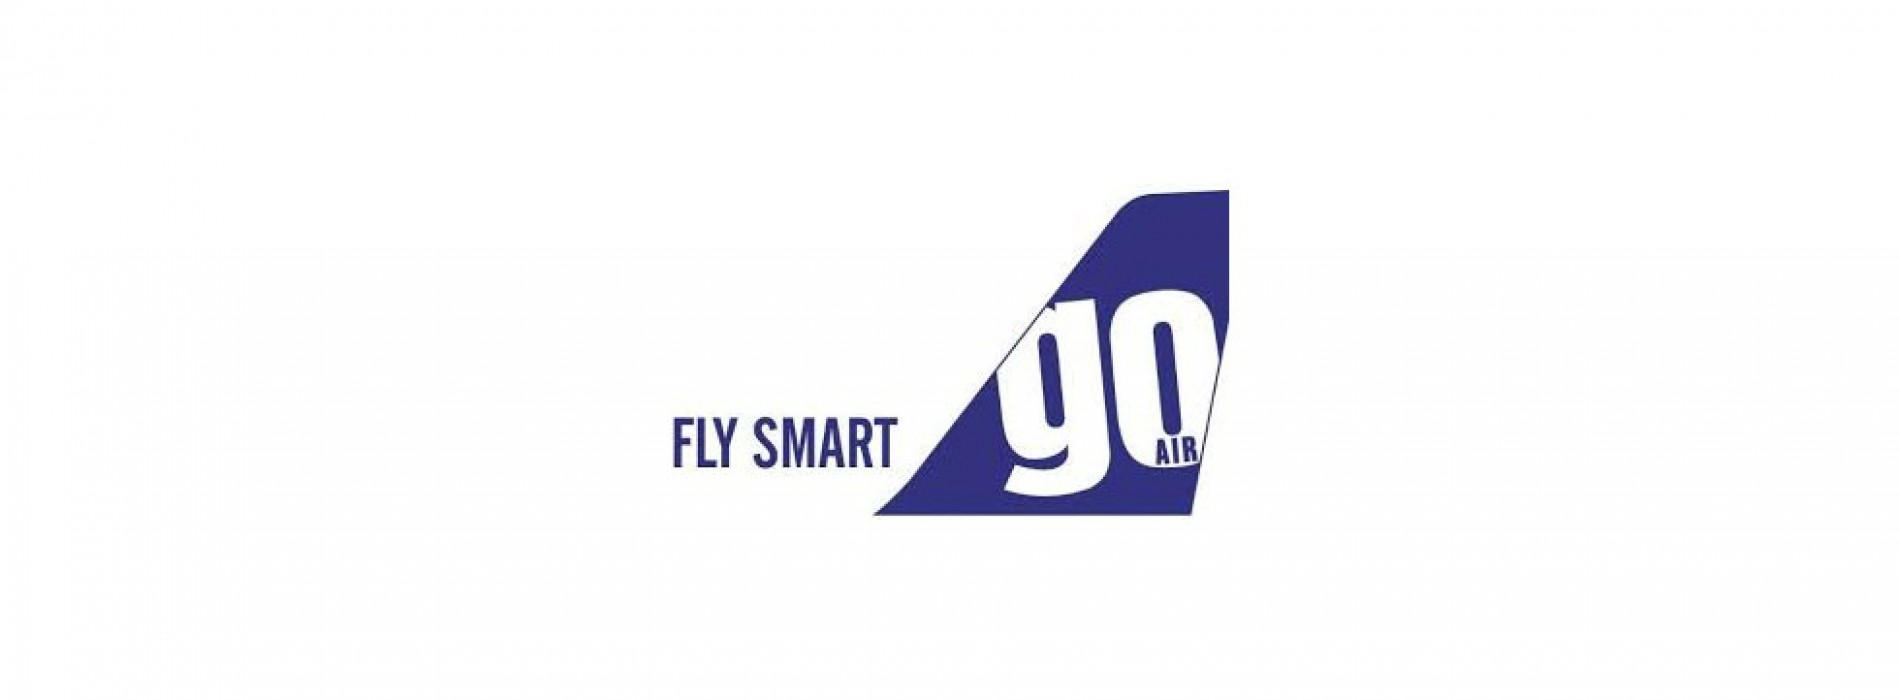 GoAir may get clarity on A320 Neo delivery schedule by mid-Jan